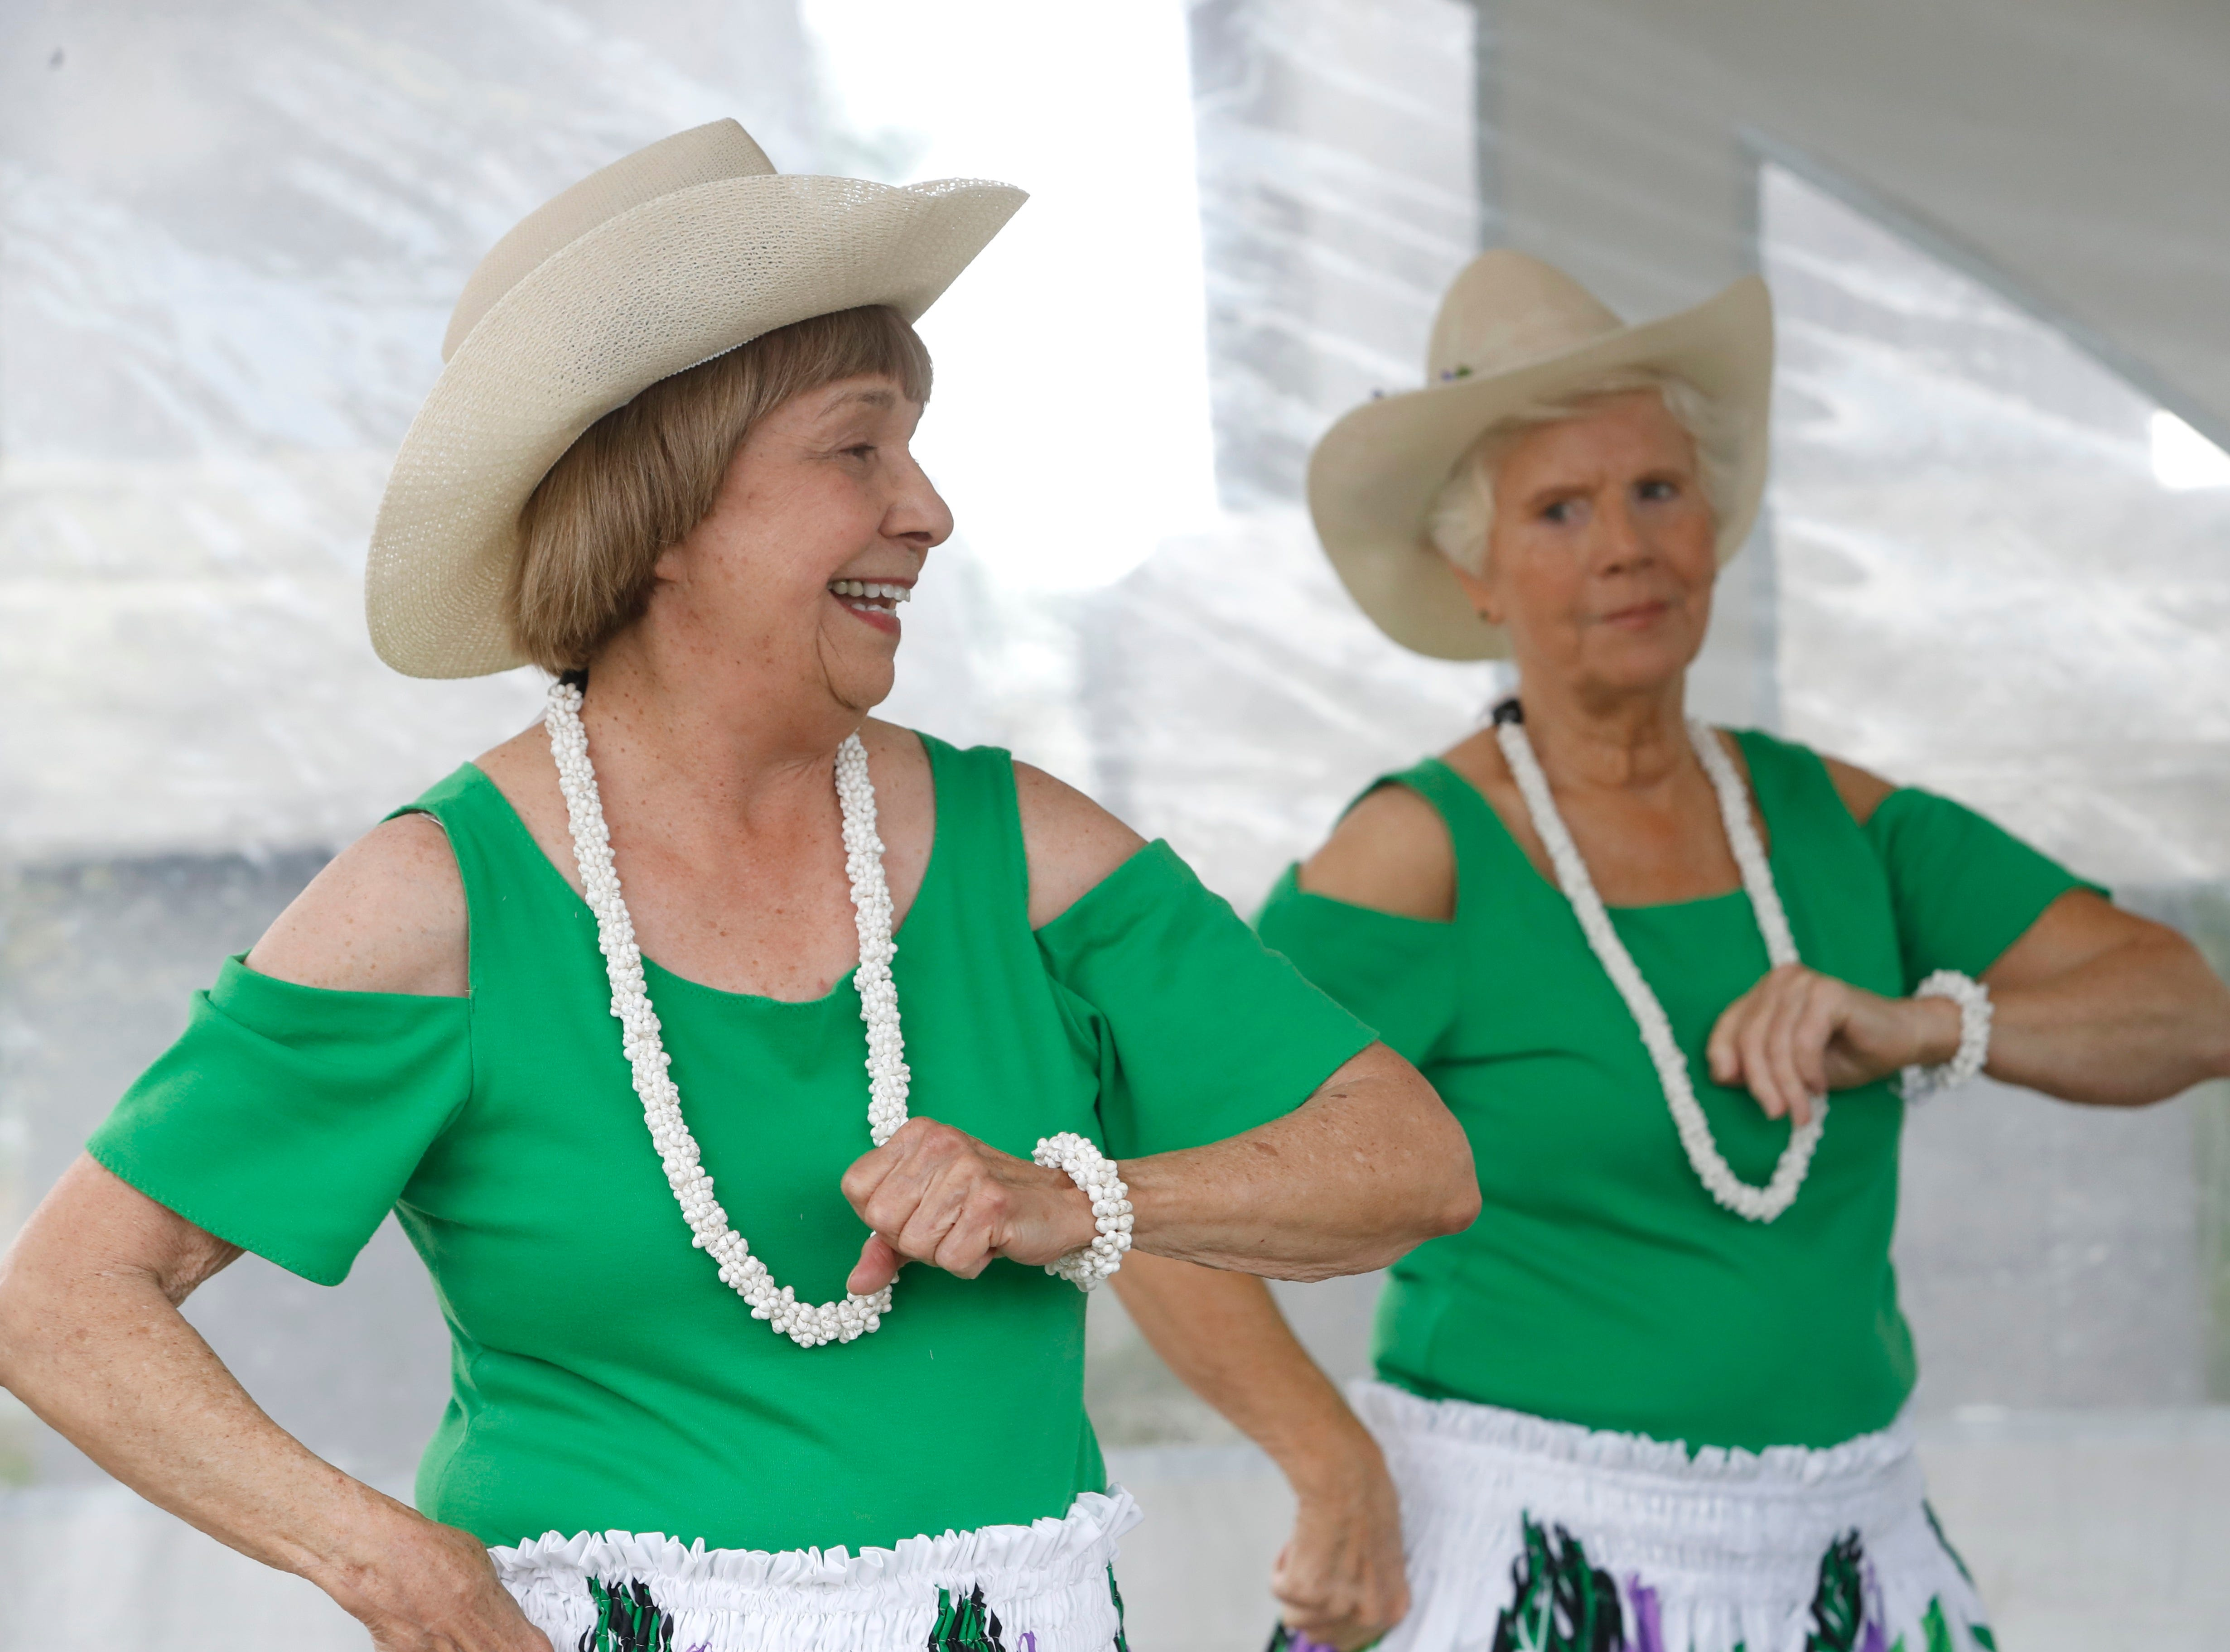 Sandy Jones, left, and Marsha Derby give a hula performance Saturday with their Nani Wale Na Kupuna group from the Redding Senior Center during the Whole Earth and Watershed Festival at Redding City Hall.